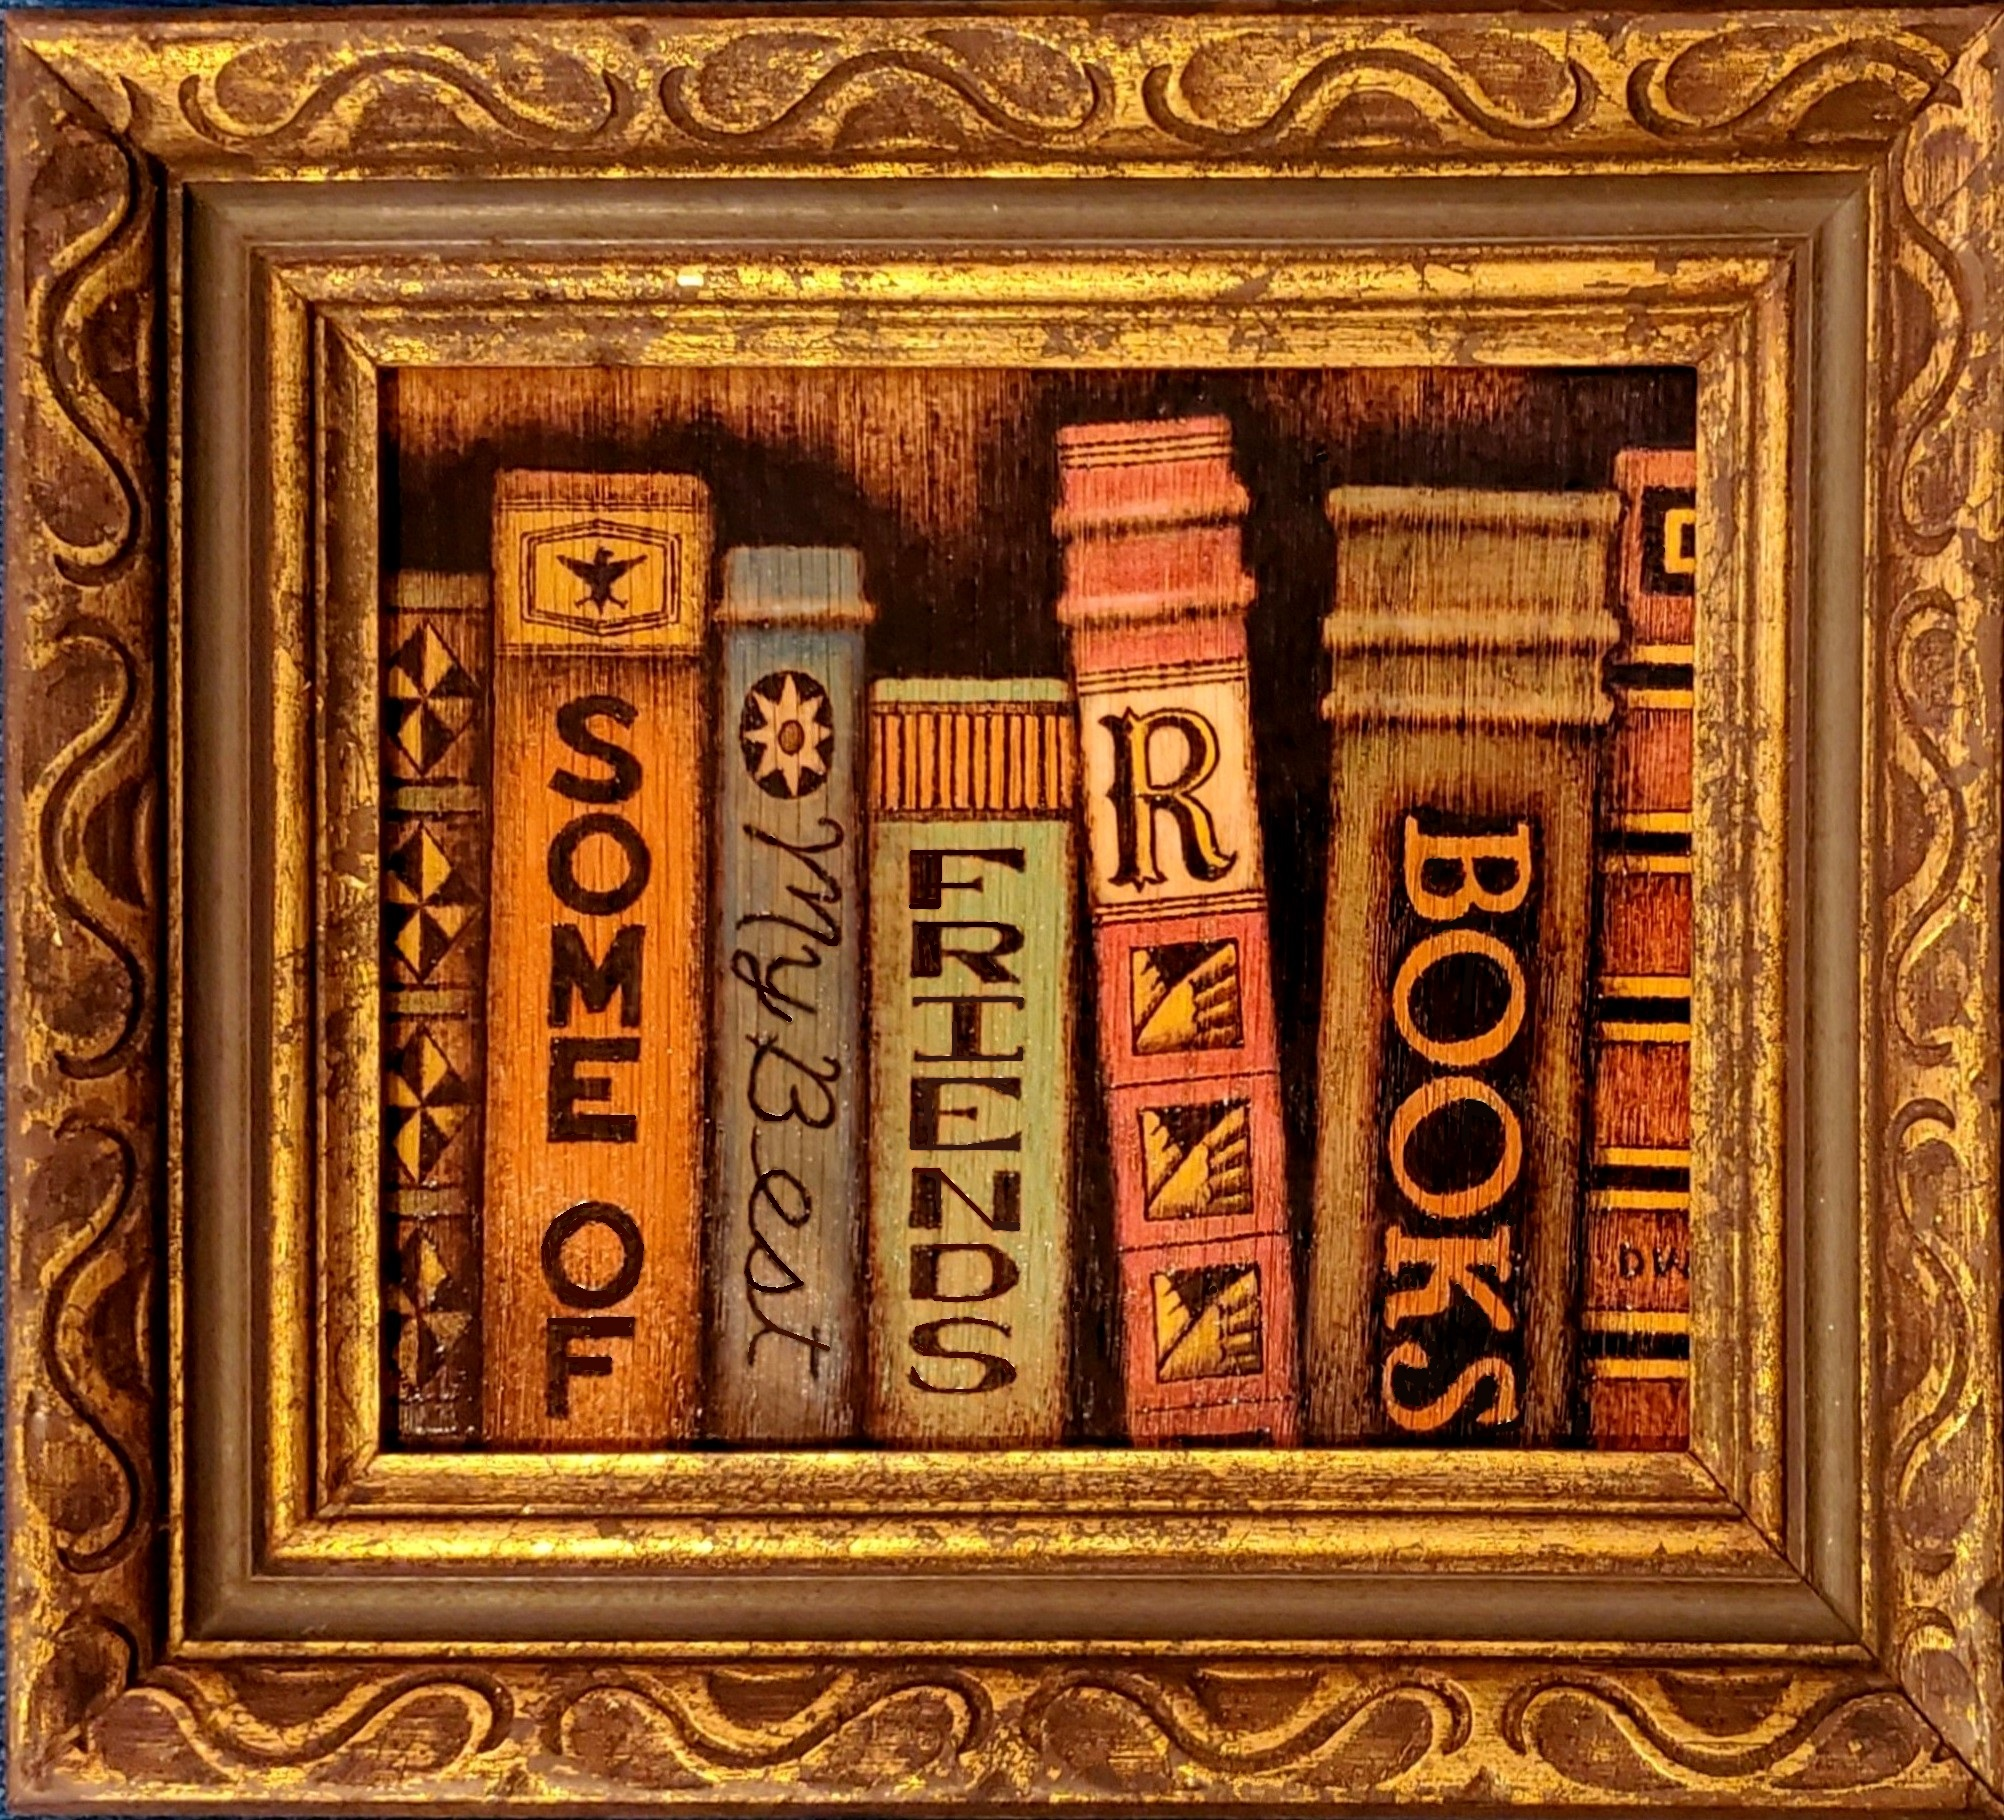 Pyrographic image of Books on bookshelf by Don White artist